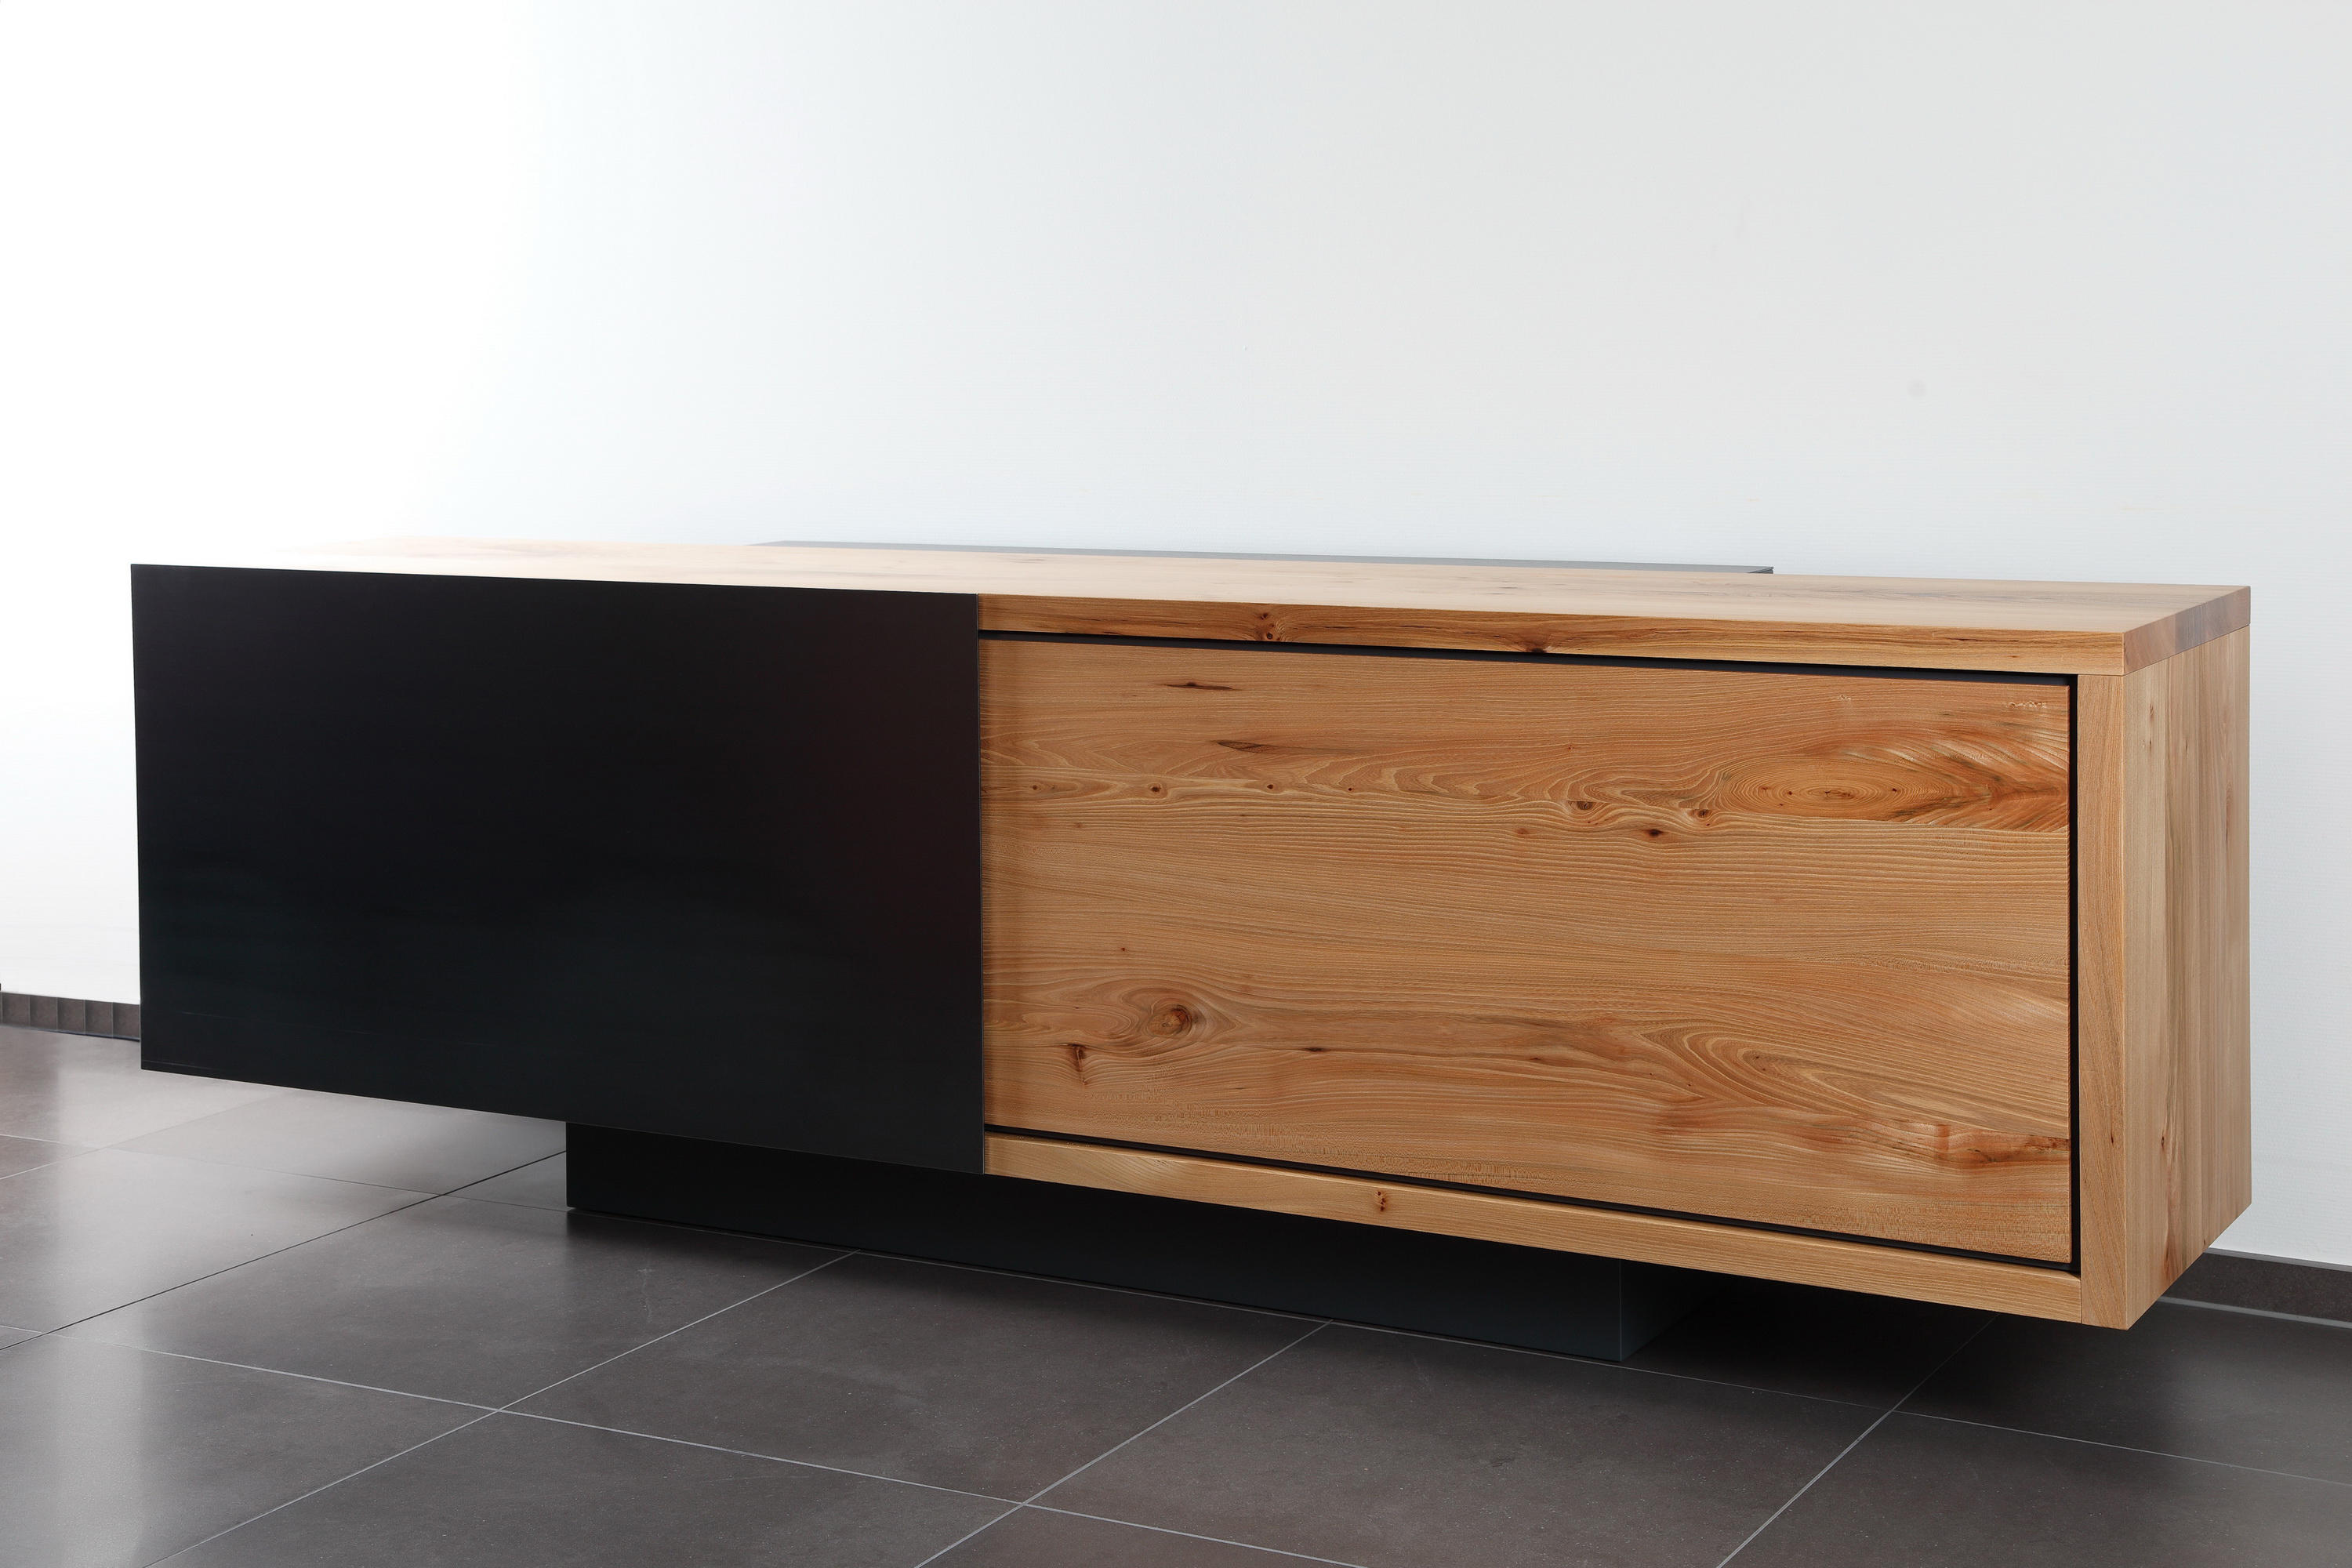 Möbel design sideboard  IGN. B2. TV. SIDEBOARD. - Multimedia Sideboards von Ign. Design ...